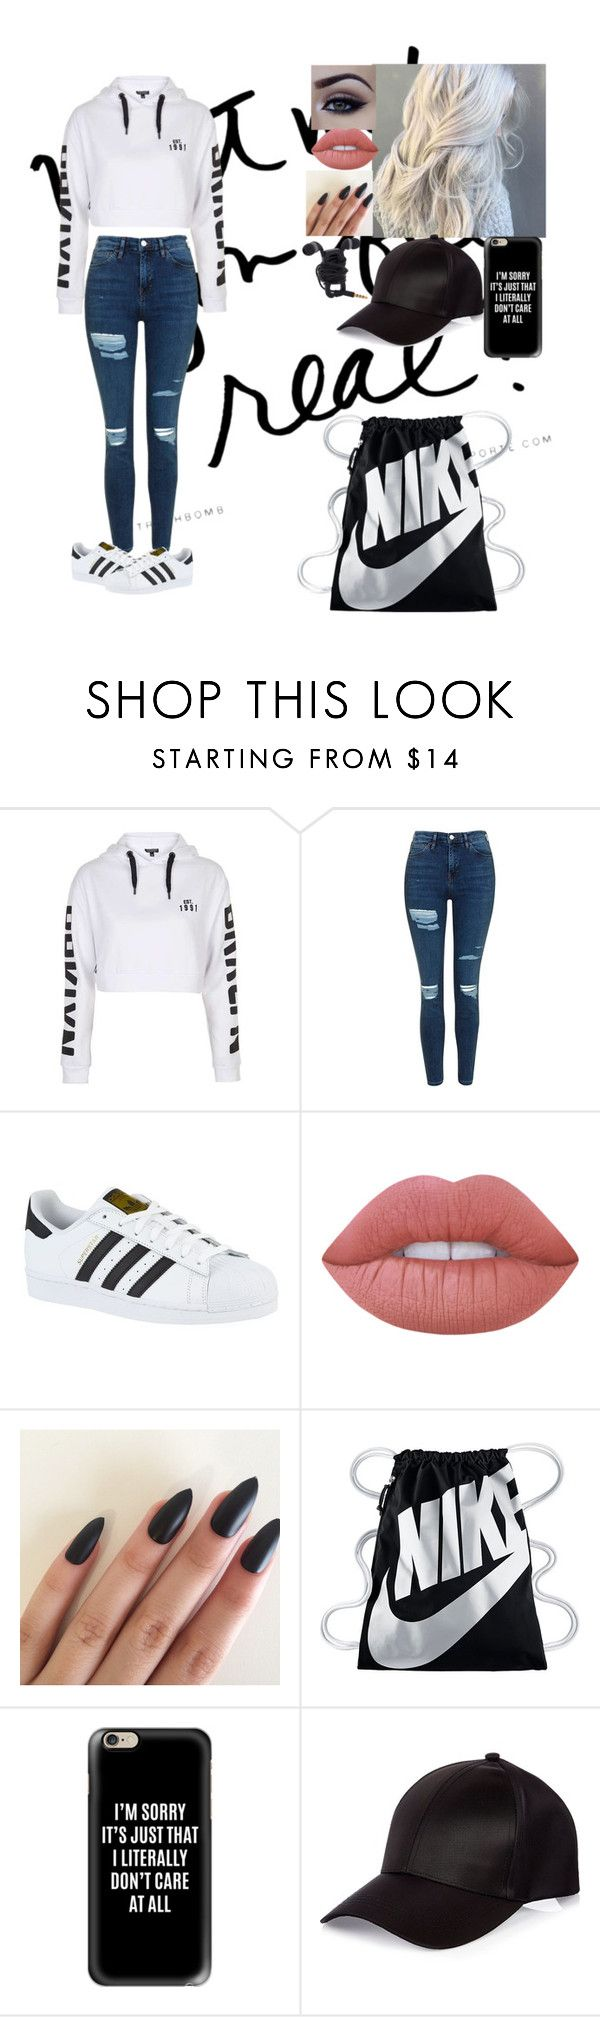 """""""Untitled #307"""" by chansoo ❤ liked on Polyvore featuring Topshop, adidas, Lime Crime, NIKE, Casetify and River Island"""